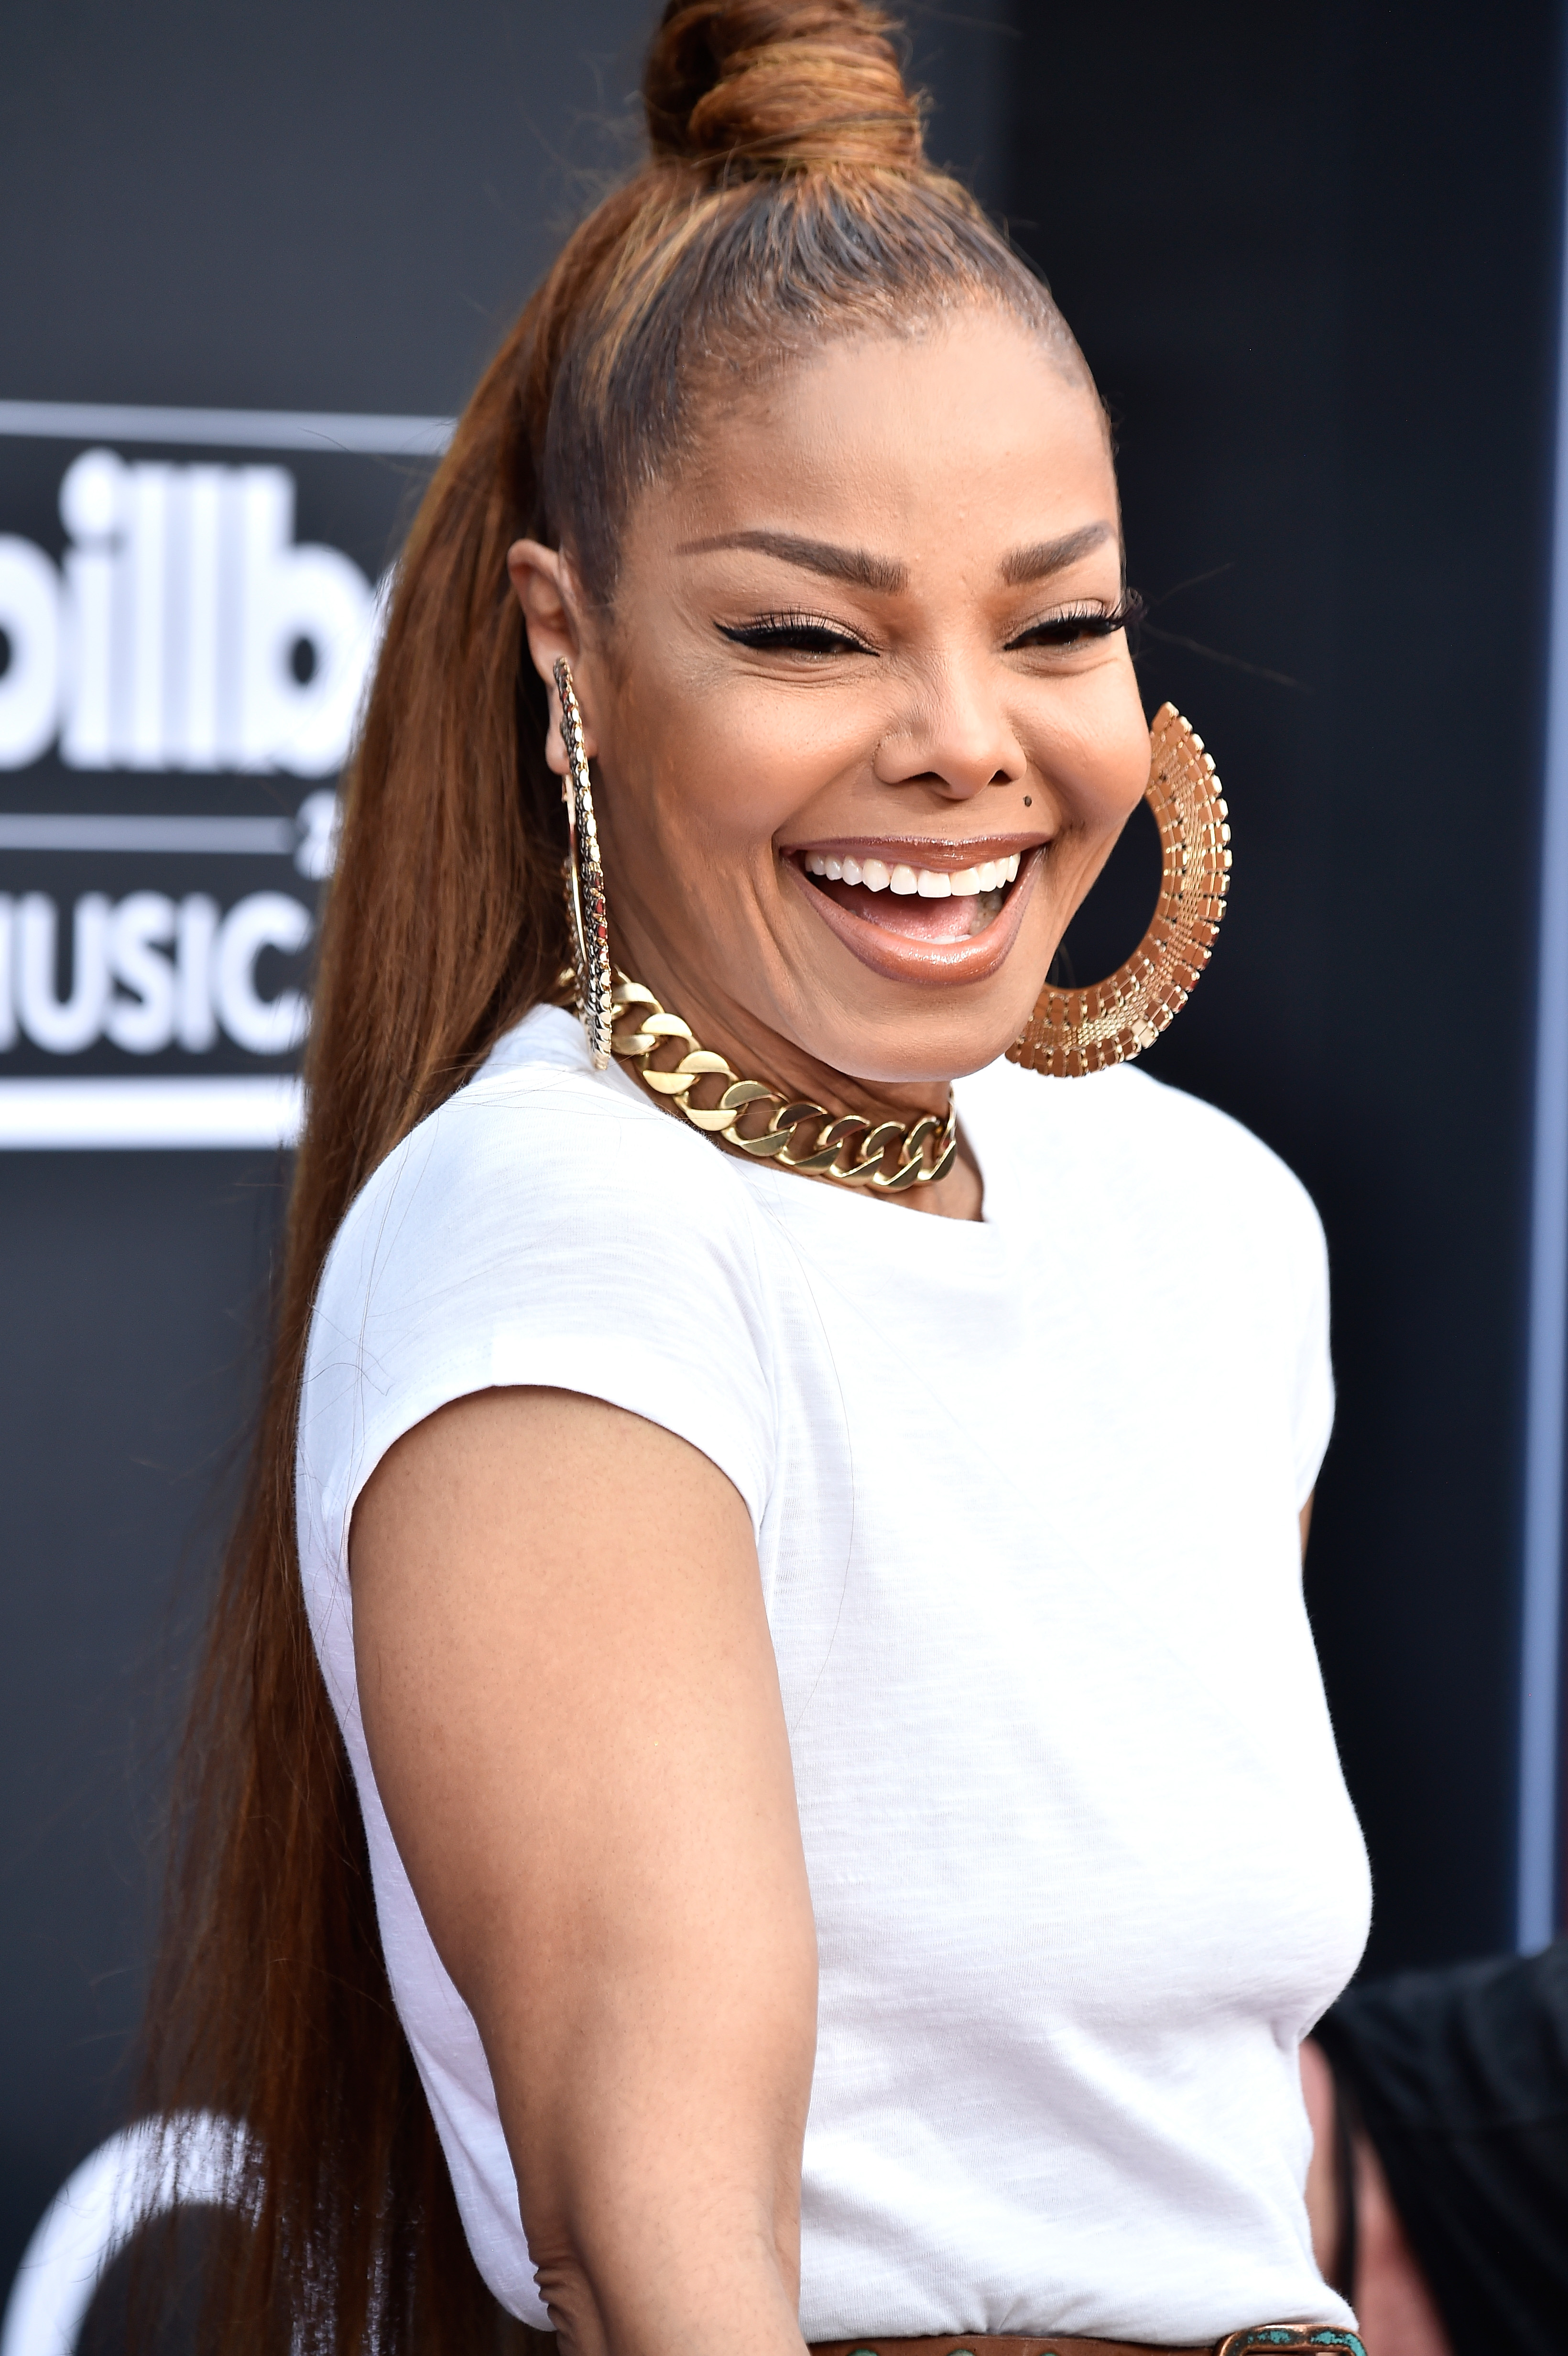 Honoree Janet Jackson attends the 2018 Billboard Music Awards at MGM Grand Garden Arena on May 20, 2018 in Las Vegas, Nevada.